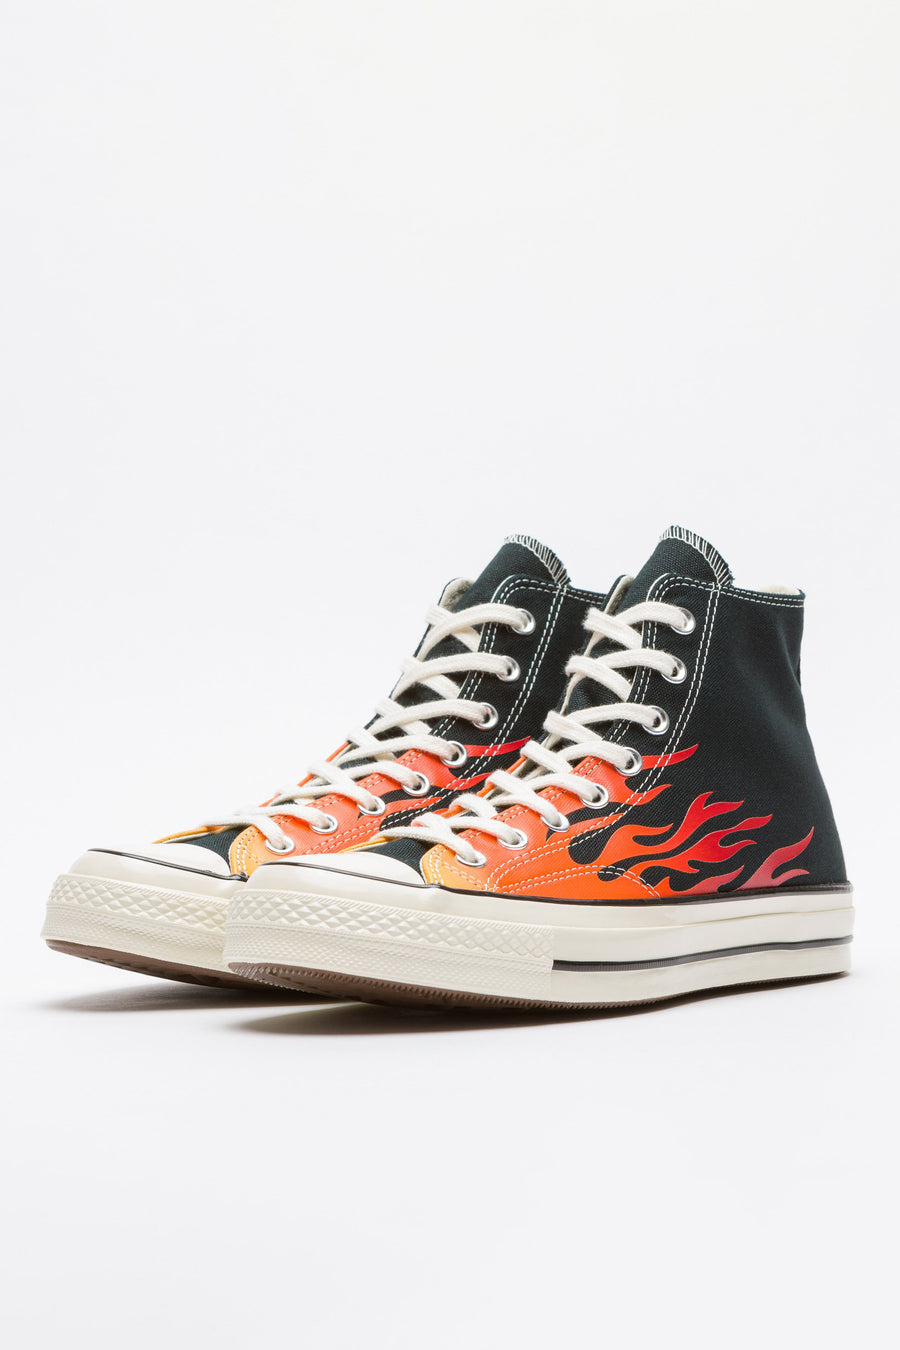 Converse Chuck 70 Hi in Black/Enamel Red/Yellow - Notre